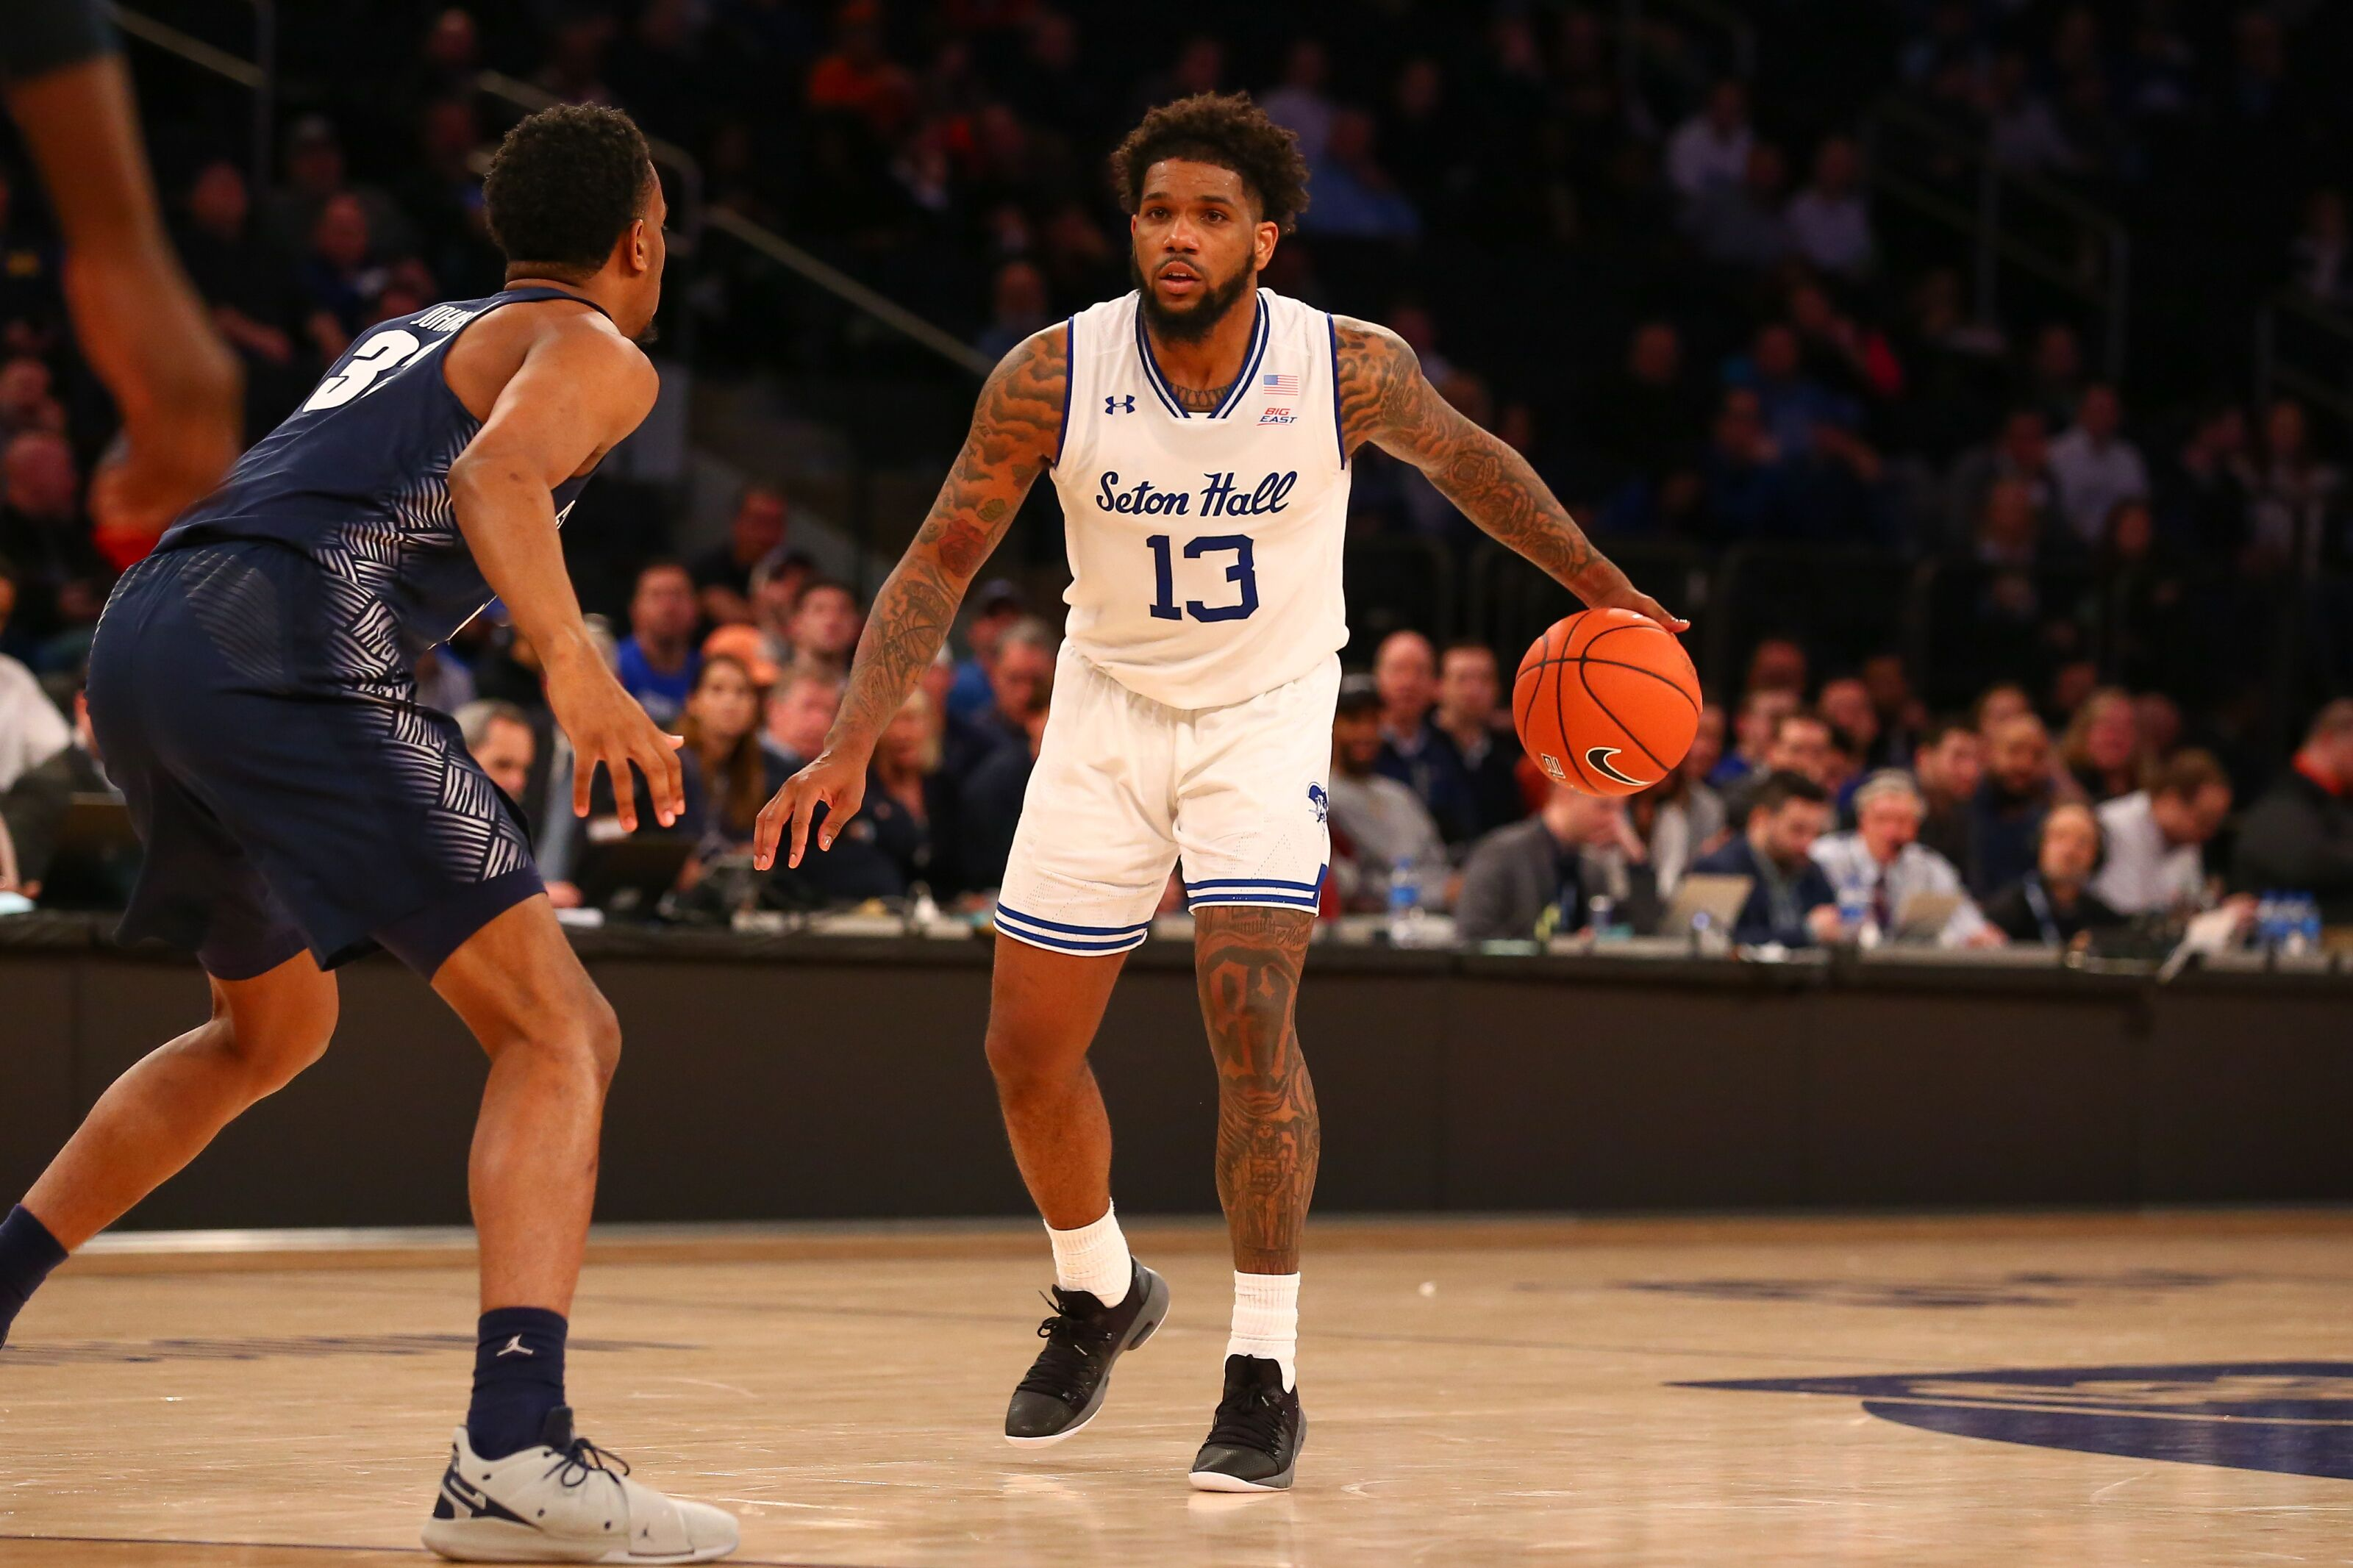 NEW YORK, NY - MARCH 14: Seton Hall Pirates guard Myles Powell (13) during the second half of the Big East Tournament quarterfinal game between the Seton Hall Pirates and the Georgetown Hoyas on March 14, 2019 at Madison Square Garden in New York, NY. (Photo by Rich Graessle/Icon Sportswire via Getty Images)